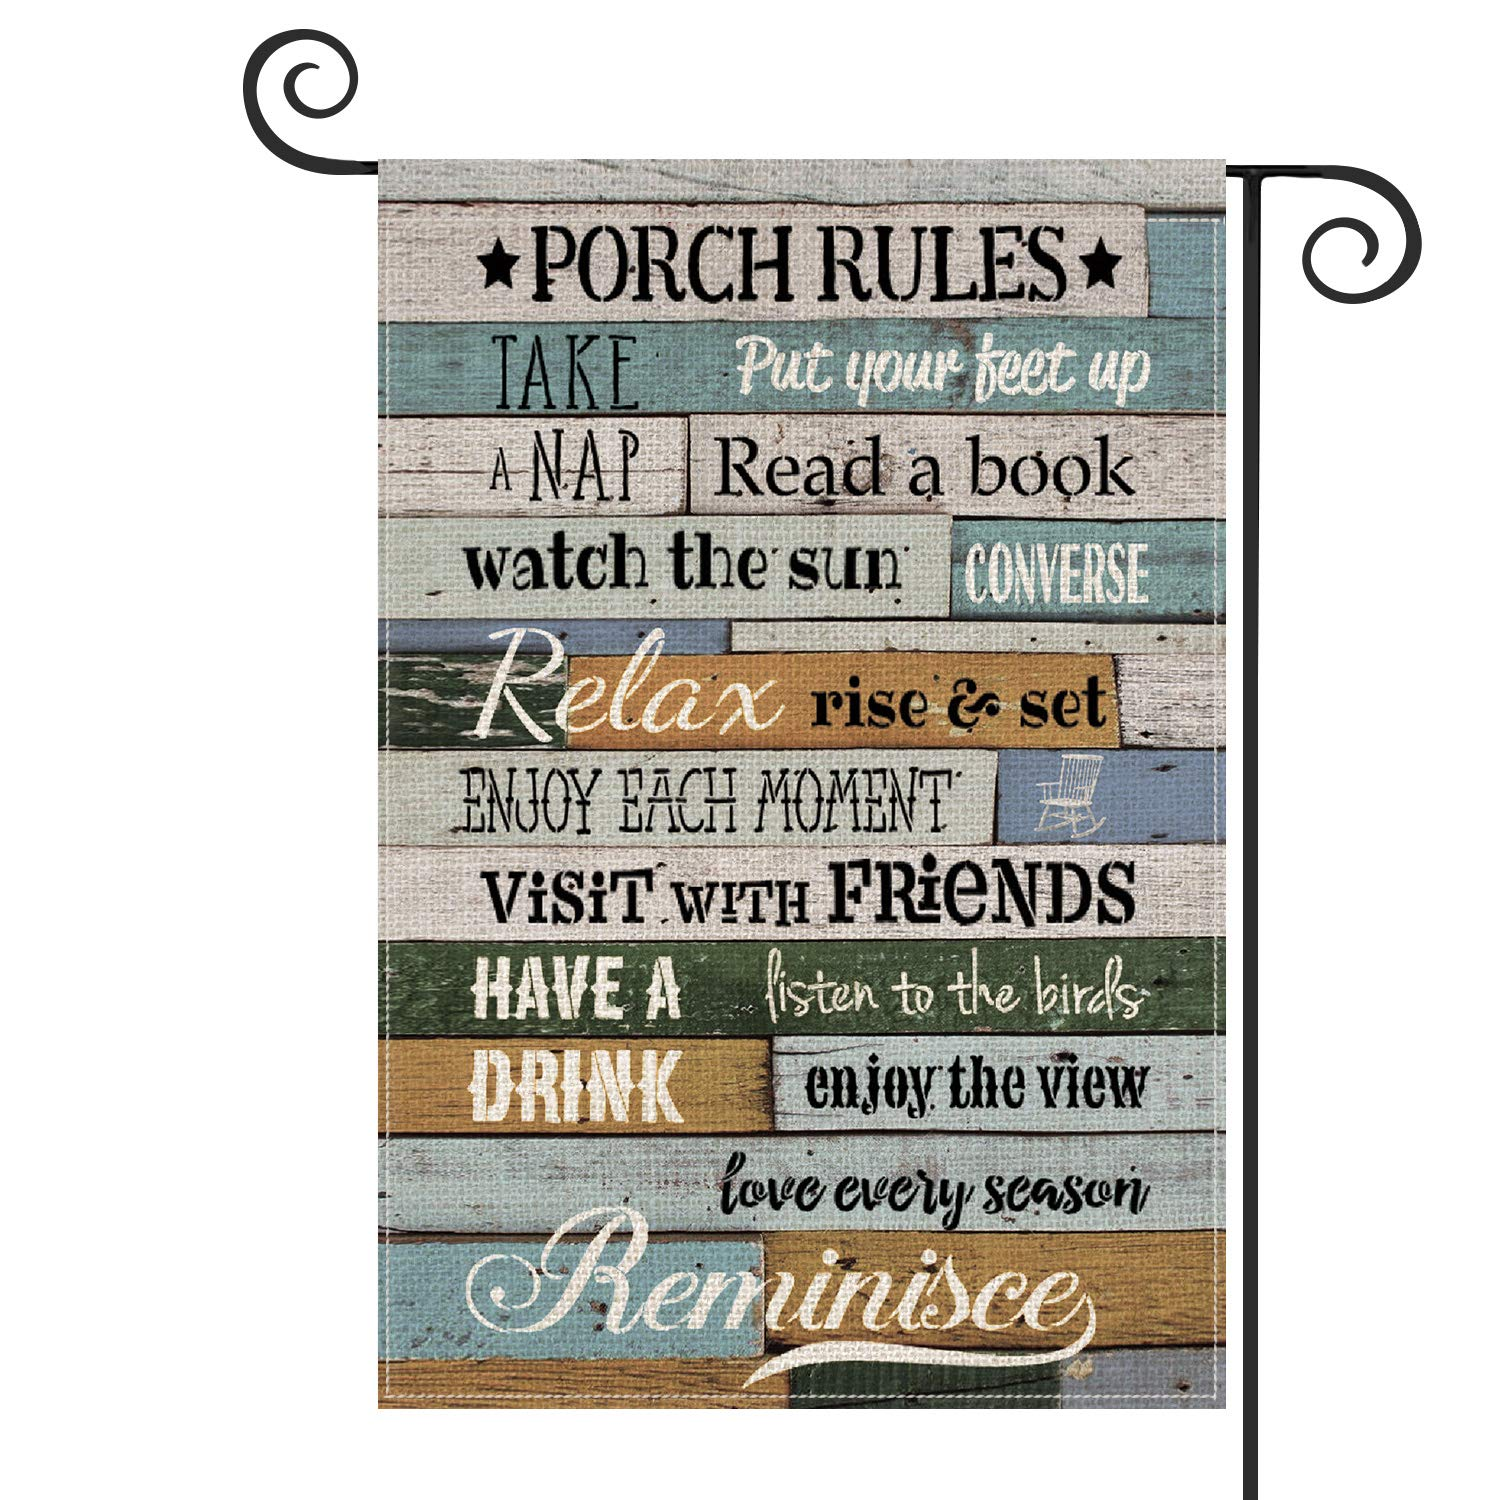 AVOIN Porch Rules Slogan Wood Garden Flag Vertical Double Sized, Enjoy The View Yard Outdoor Decoration 12.5 x 18 Inch